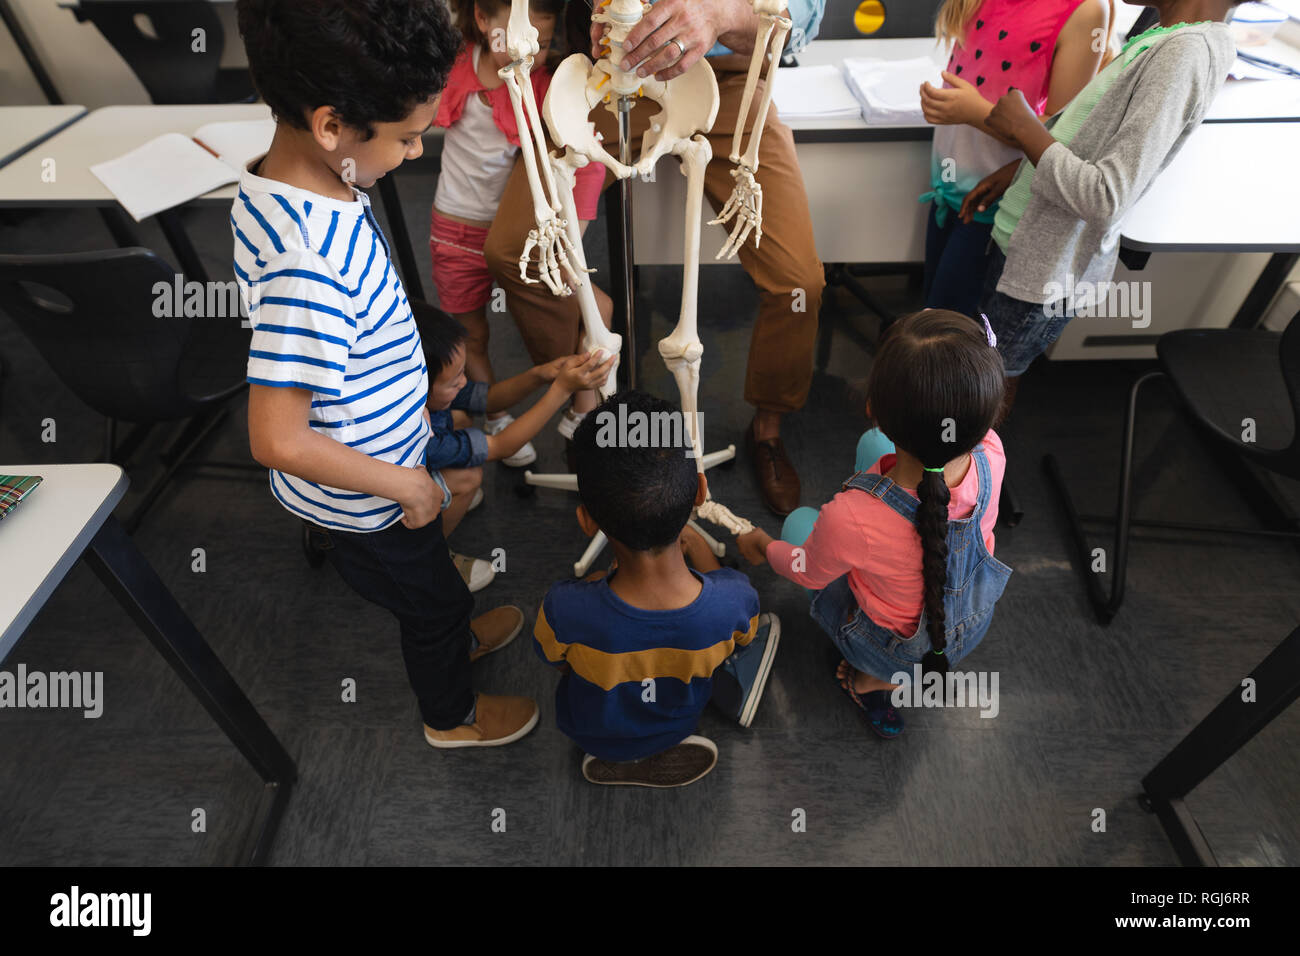 High angle view of schoolkids learning anatomy of human skeleton in classroom of elementary school - Stock Image